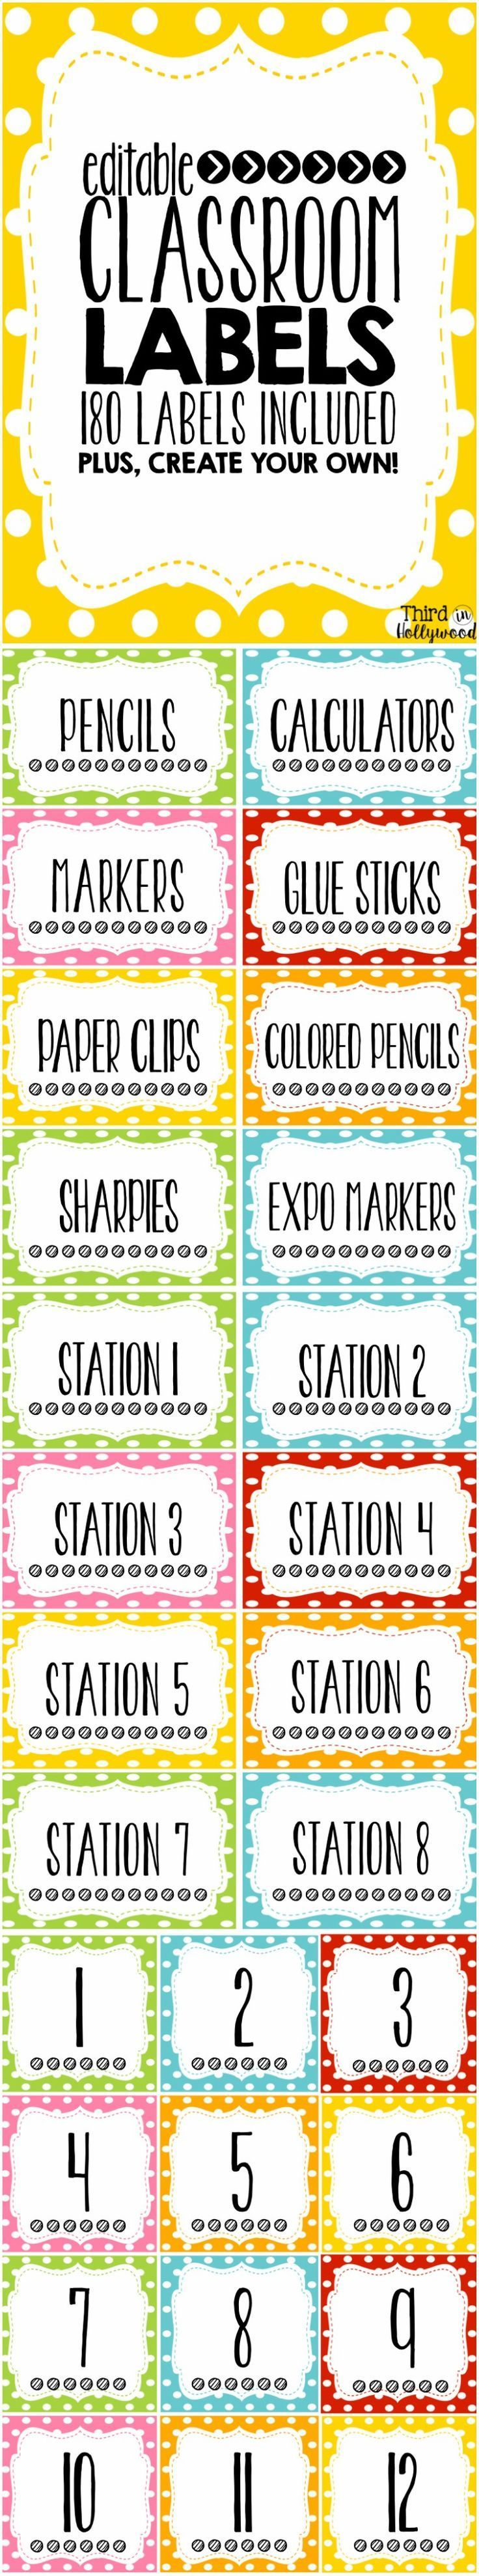 Classroom Labeling Ideas ~ The best classroom labels ideas on pinterest supply